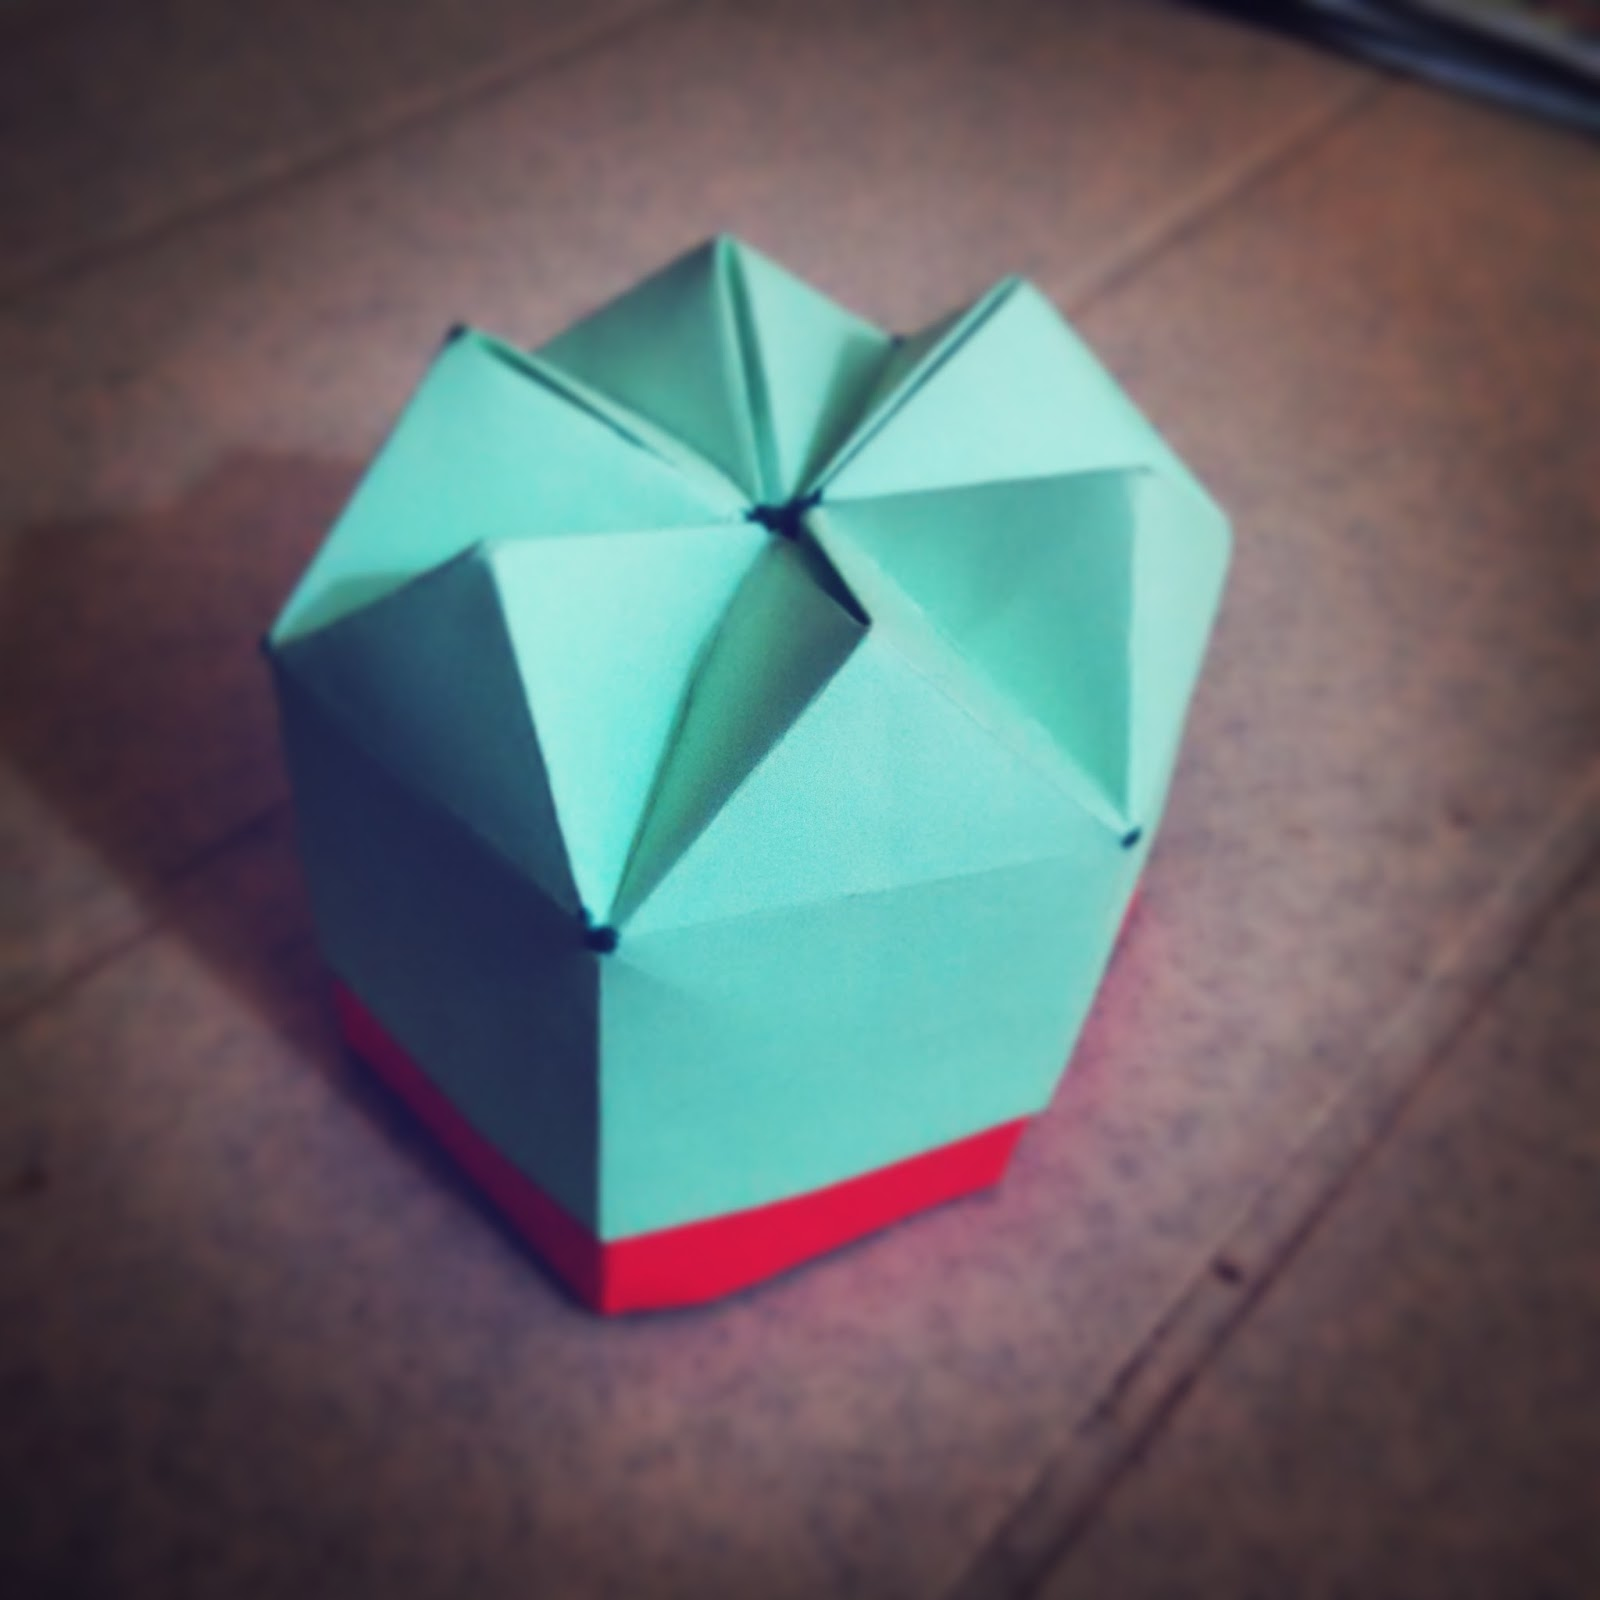 hight resolution of  hexagon gift box tomoko fuse try watching this video on www youtube com or enable javascript if it